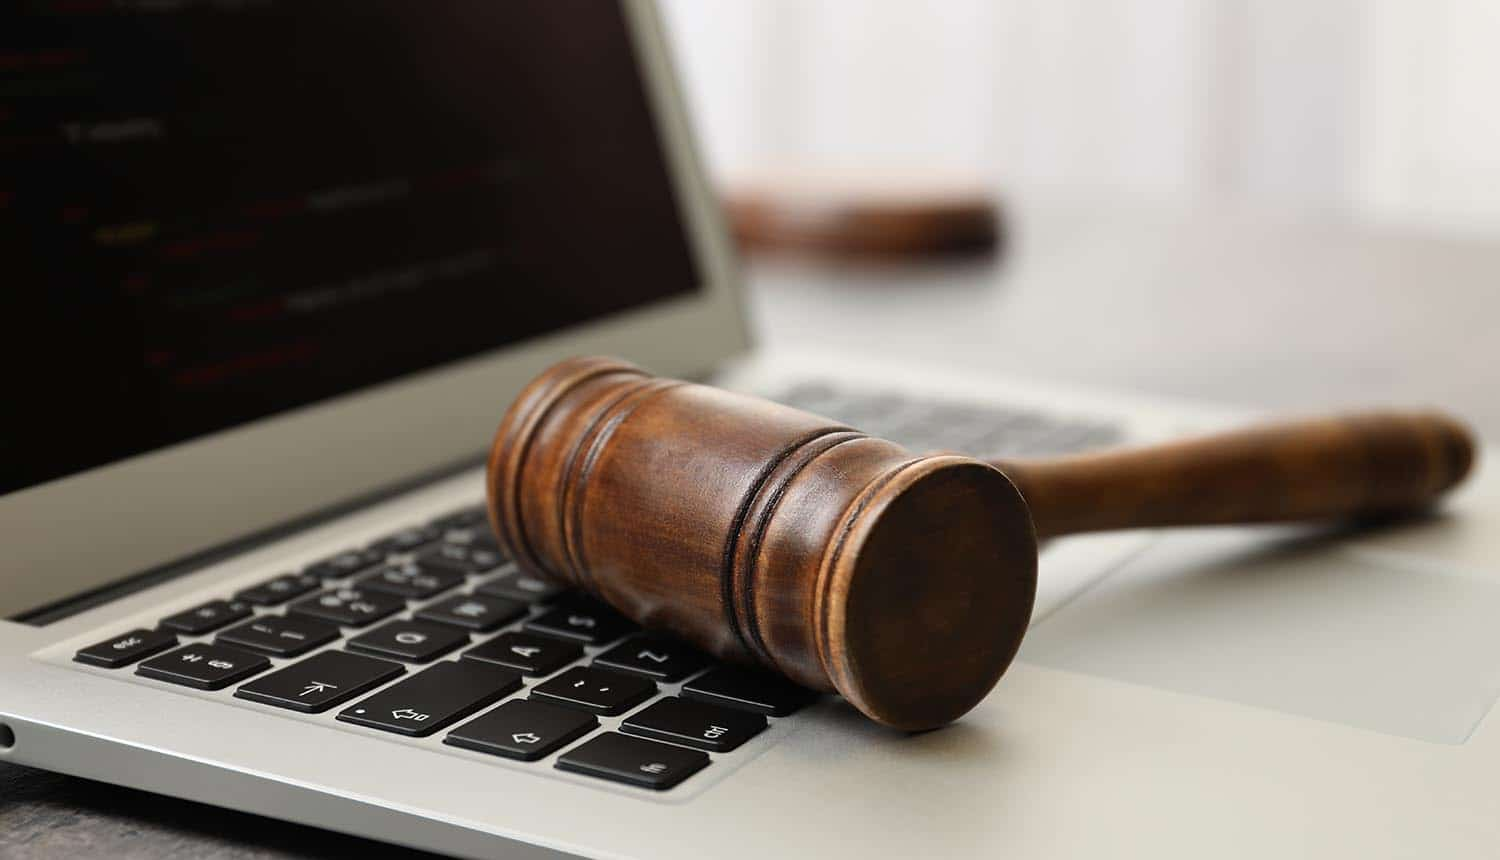 Laptop and gavel on table showing privacy complaints on adtech real time bidding